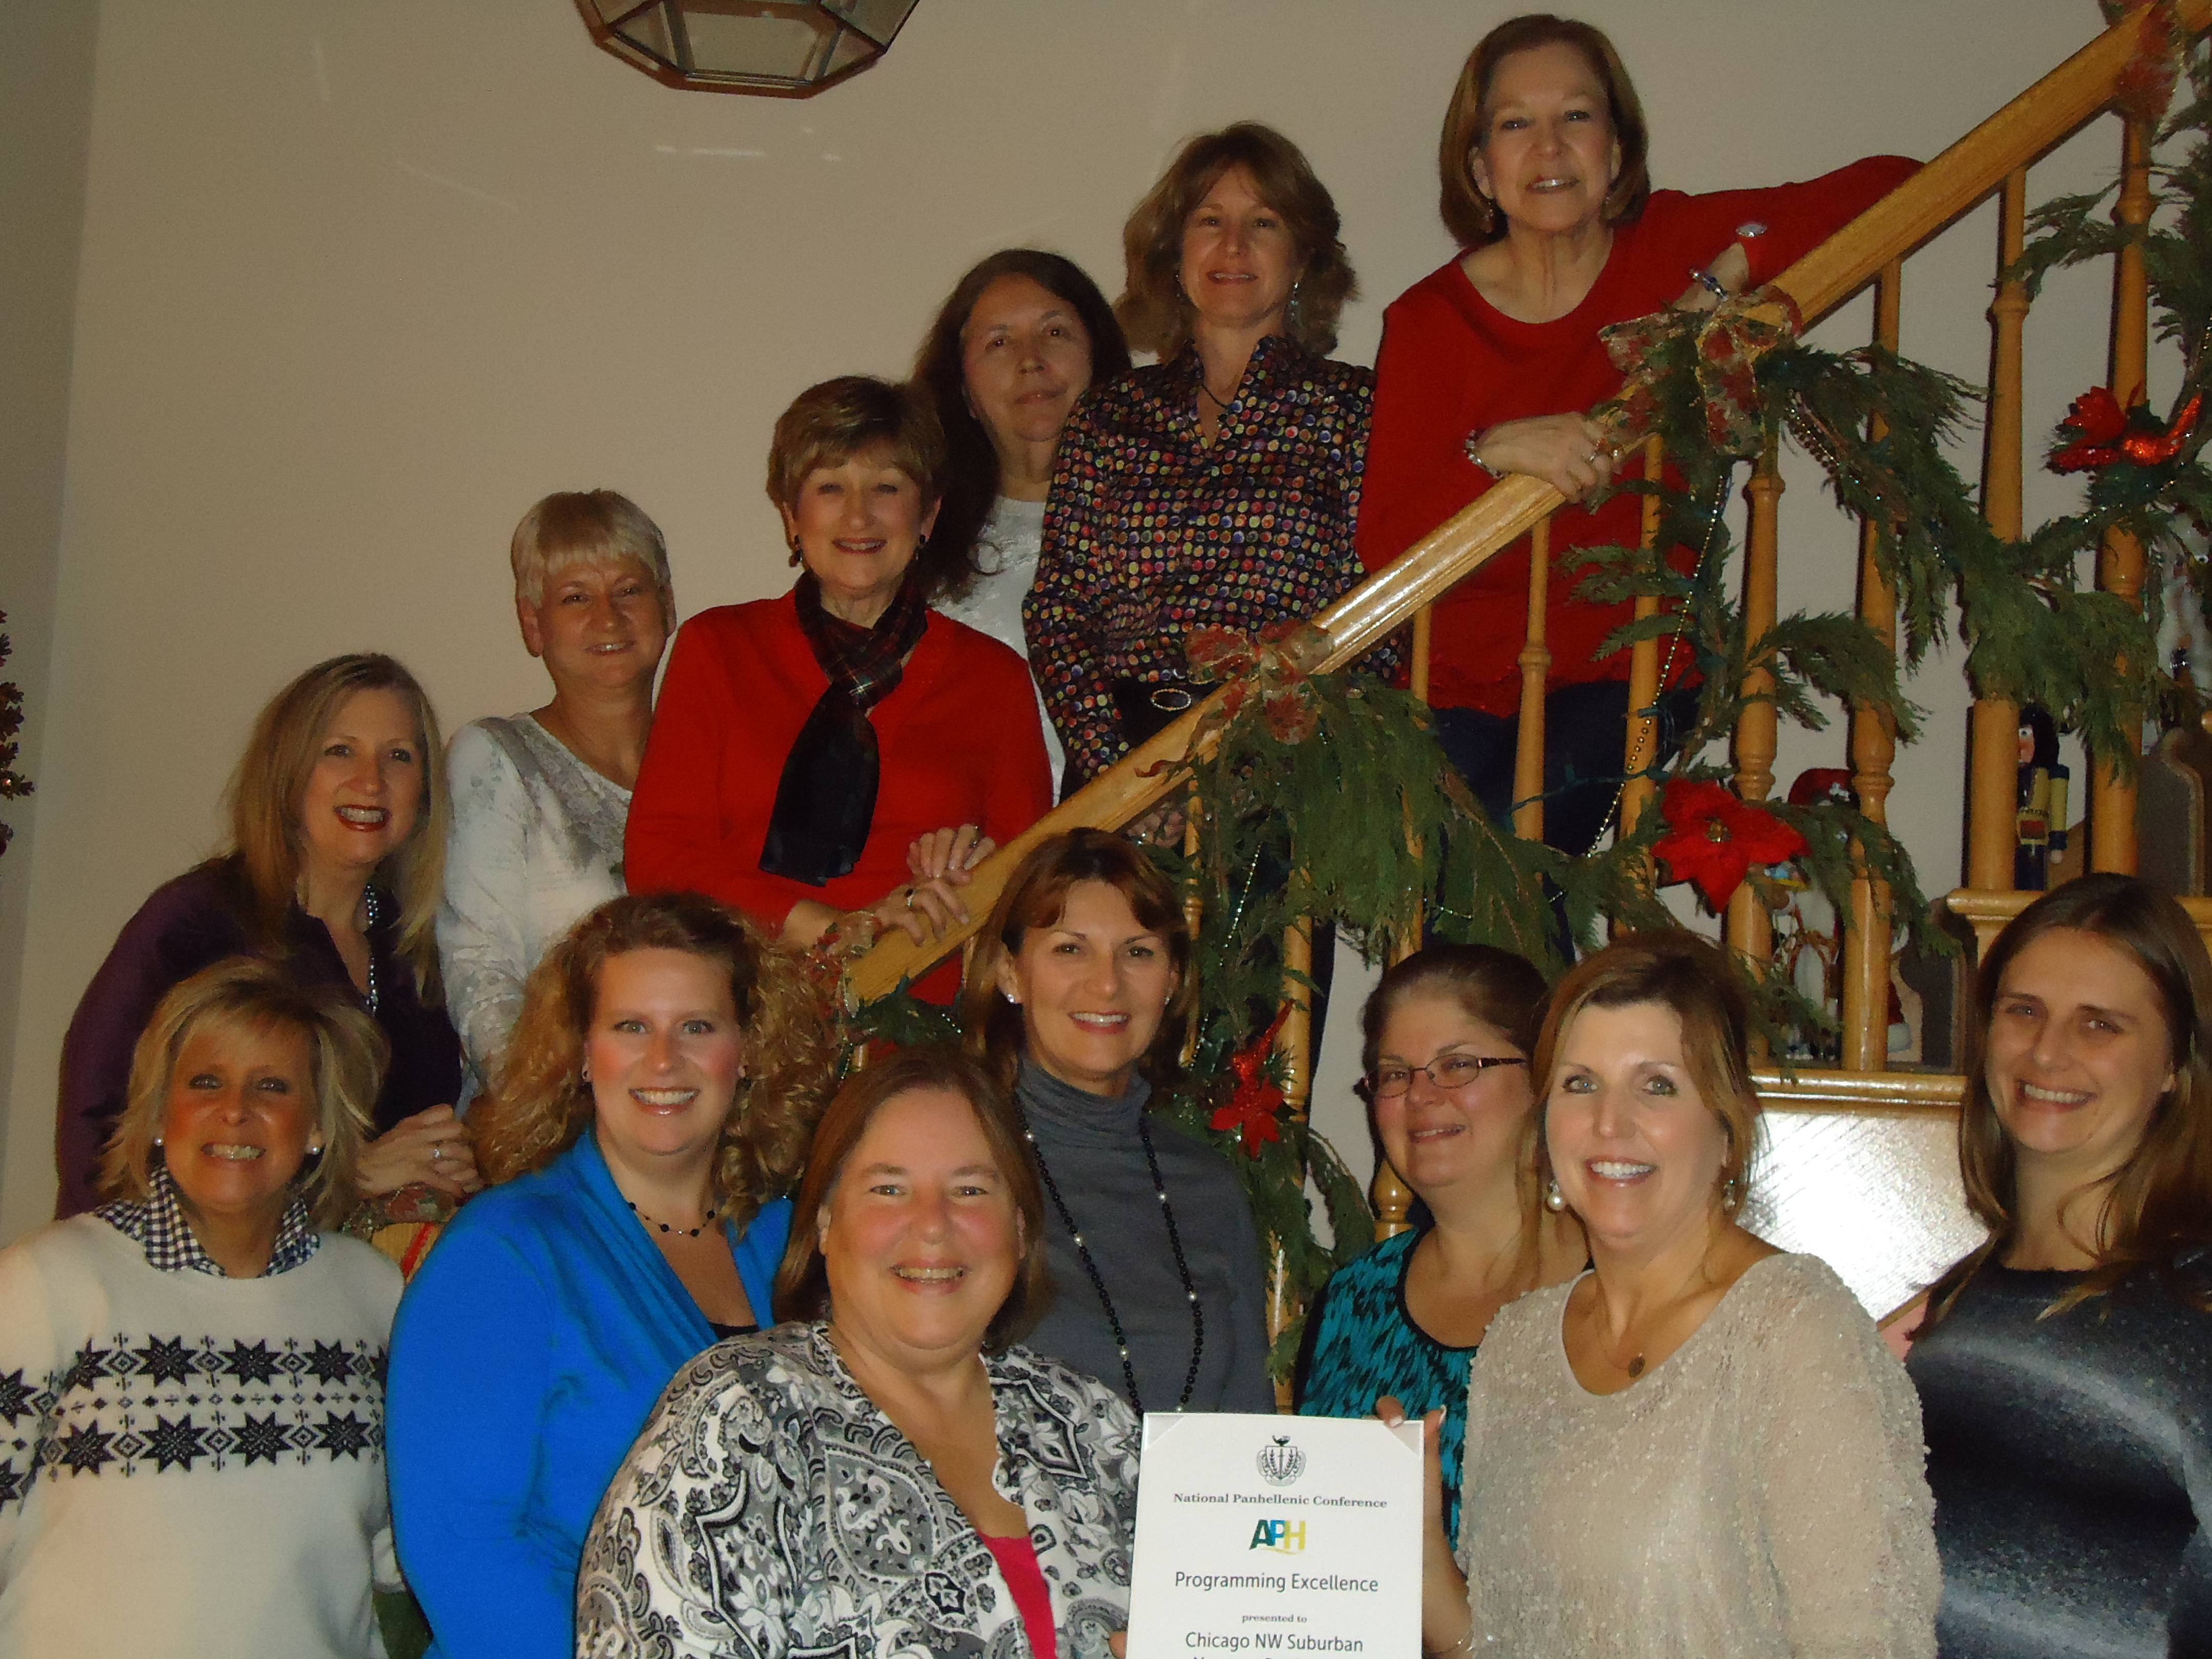 Taken at the presentation of the NPC Programming Excellence Award given to the Chicago Northwest Suburban Alumnae Panhellenic.  In the front to the left is Barb Bay, President of Chicago Northwest Suburban Panhellenic, and to the right is Kathi Heatherly of the National Panhellenic Conference.  Others in the picture are representatives of the local affiliated sororities.